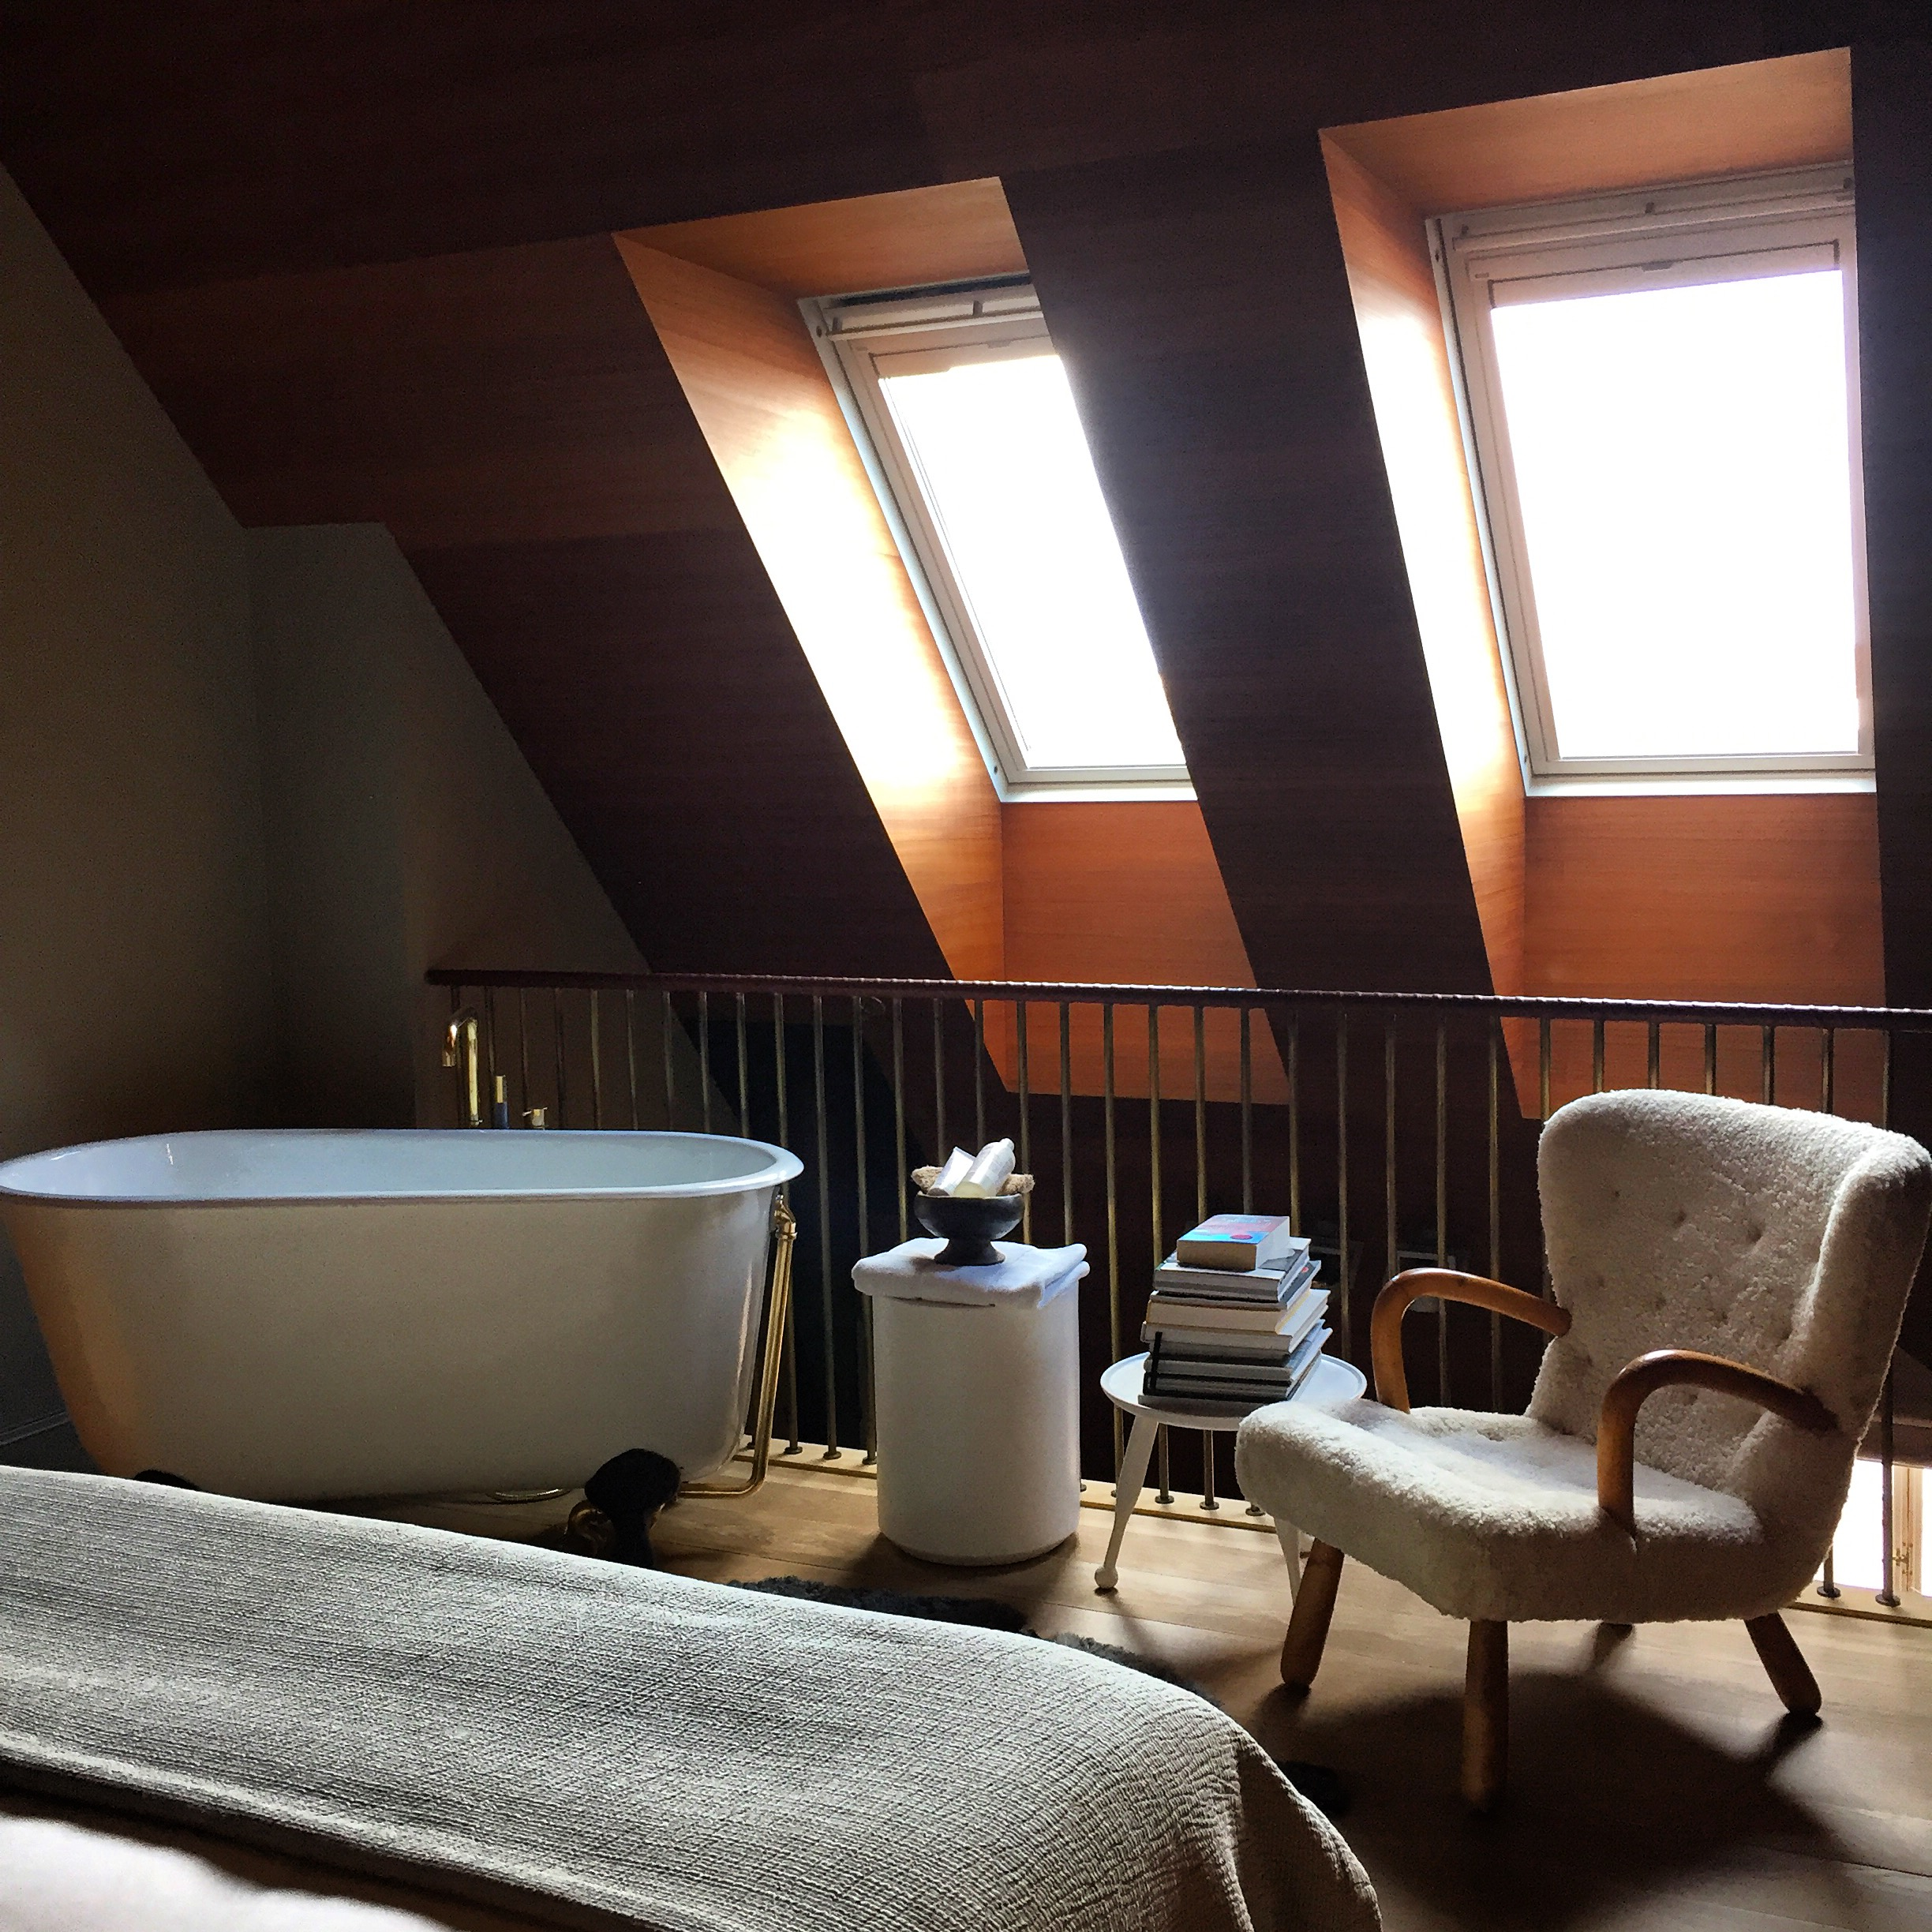 Our very own Monique stayed in this fabulous suite at Ett Hem in Stockholm over the weekend. #jetset